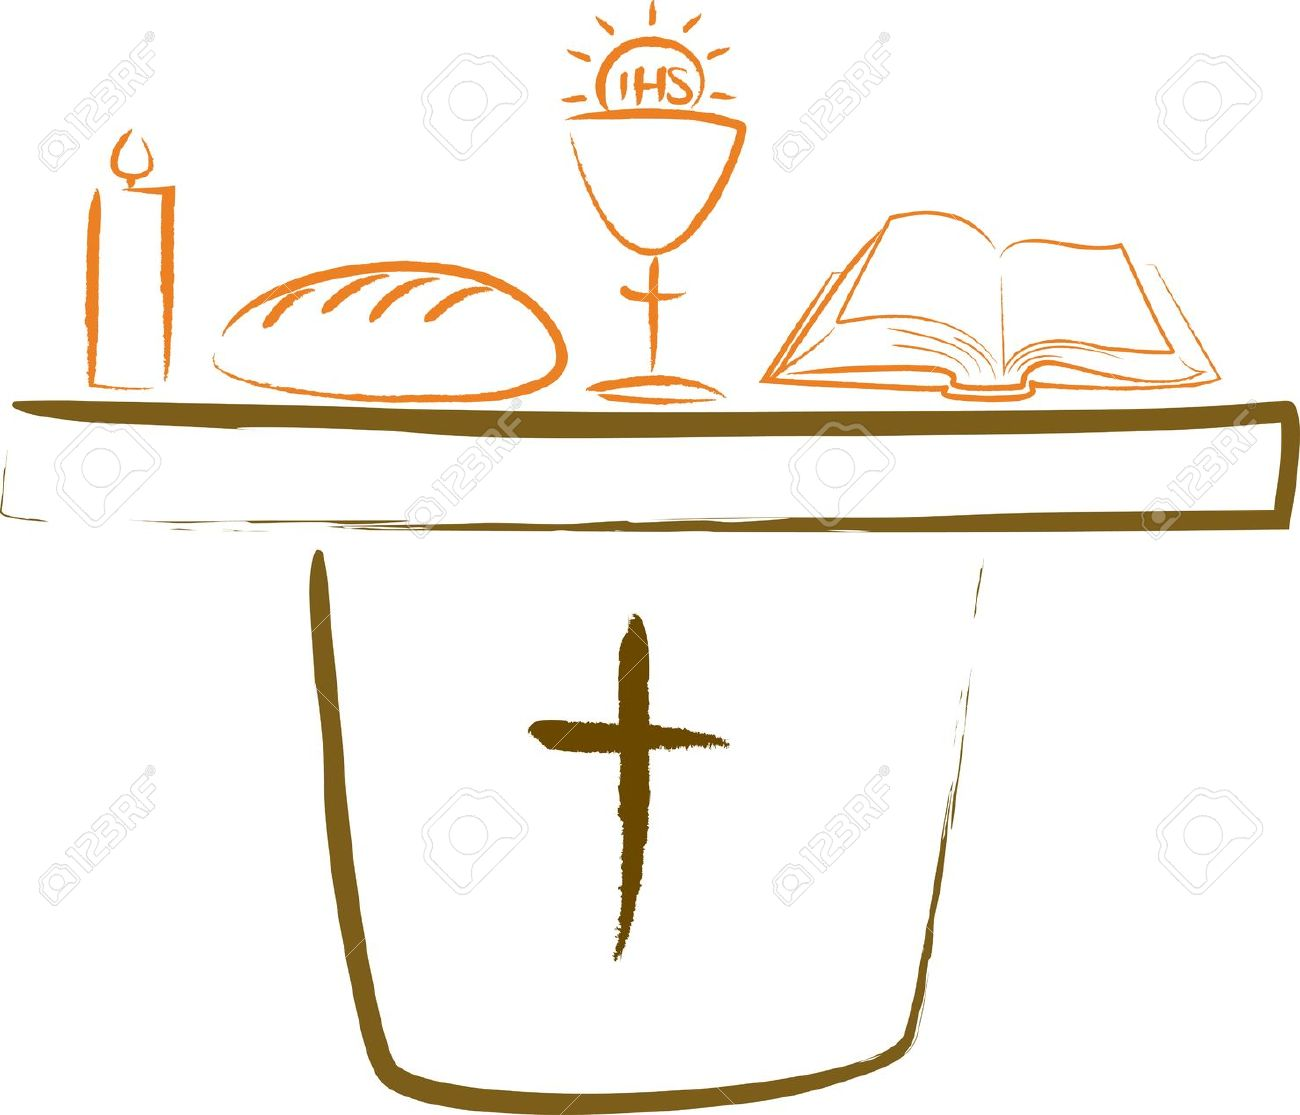 catholic church clipart at getdrawings com free for personal use rh getdrawings com catholic clipart for august catholic clipart images